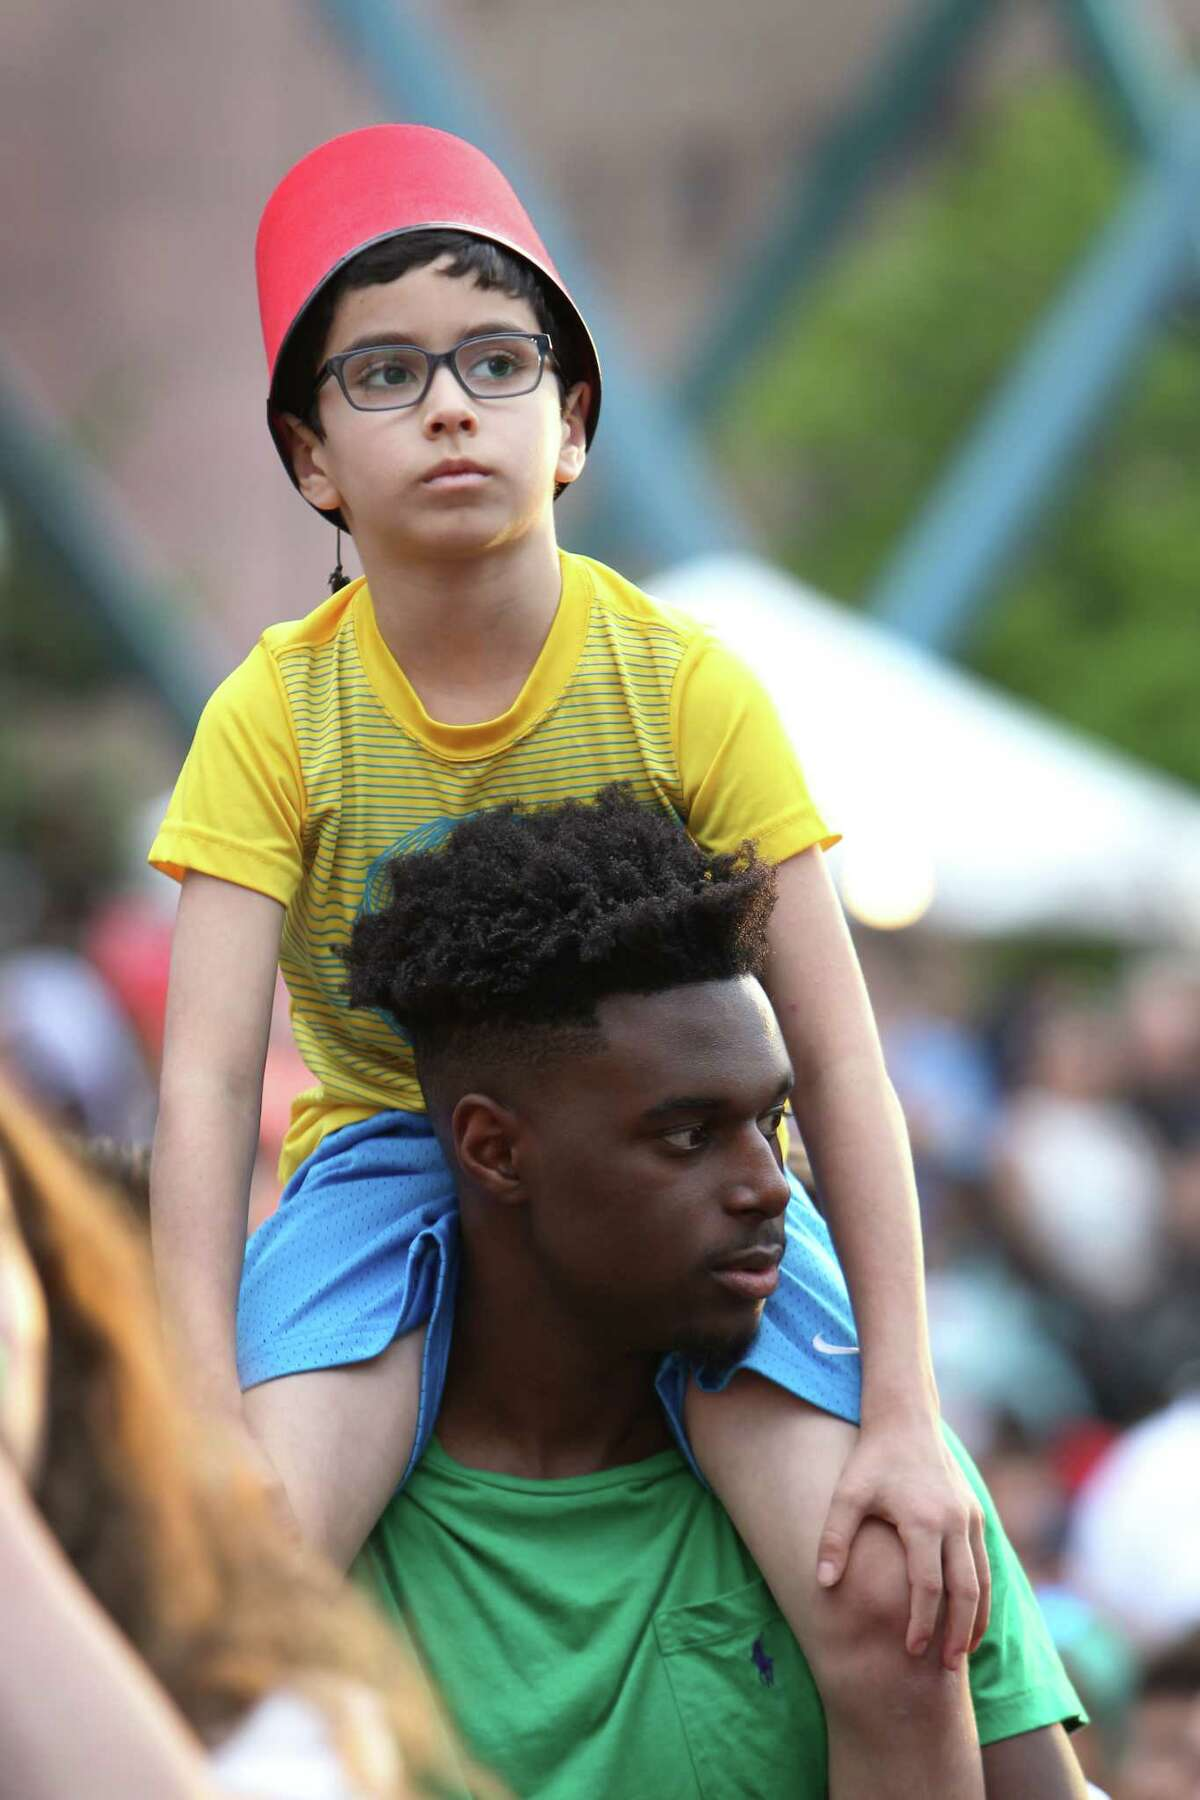 Eight-year-old Michael Koutani got a better view of the stage with the help of friend Khaalif Cooper during the Lebanese Festival held at Jones Plaza Saturday, April 1, 2017, in Houston.